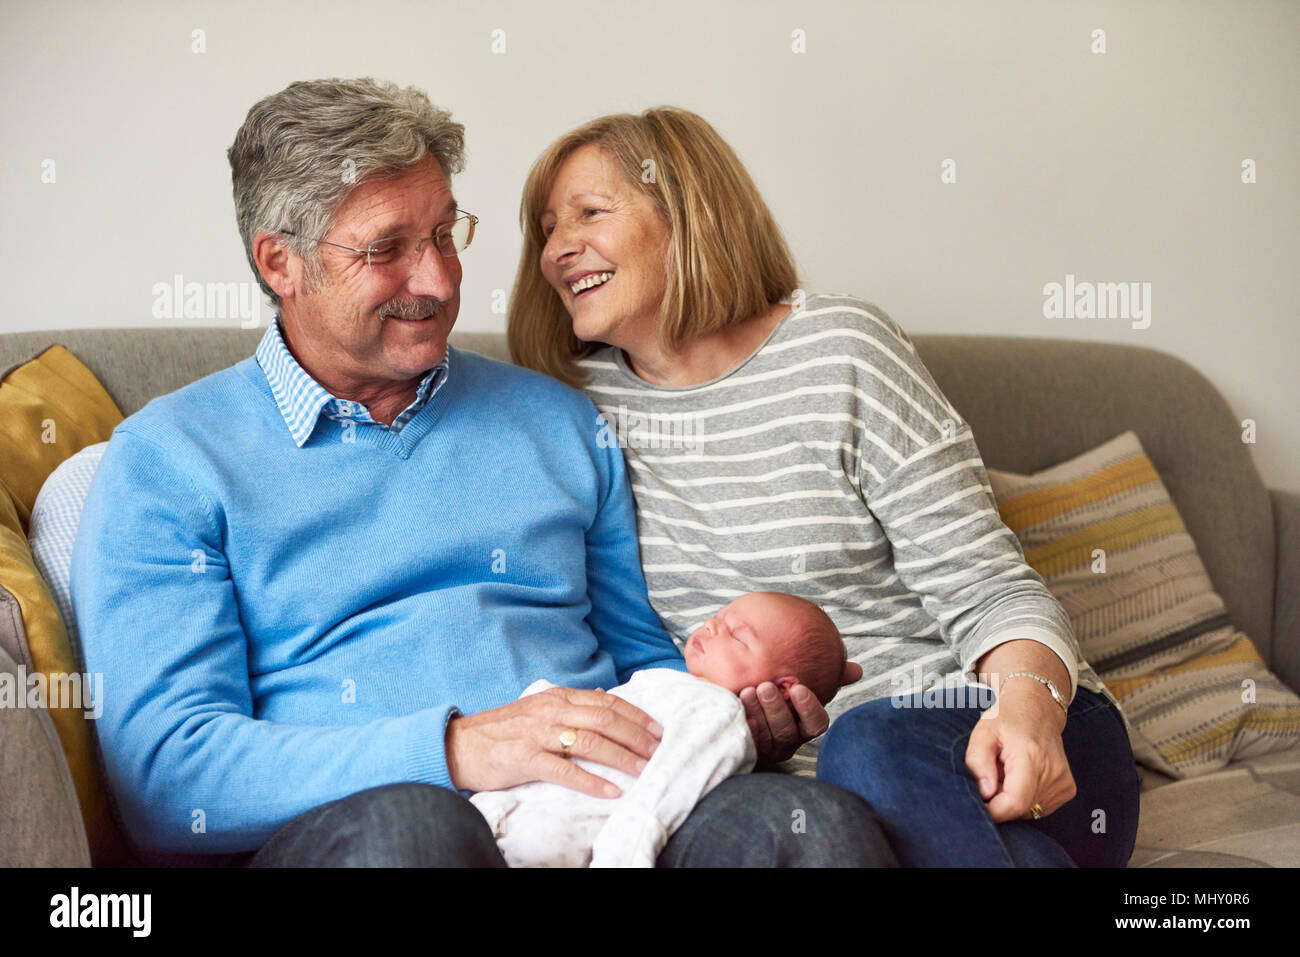 Grandparents on sofa with baby granddaughter - Stock Image